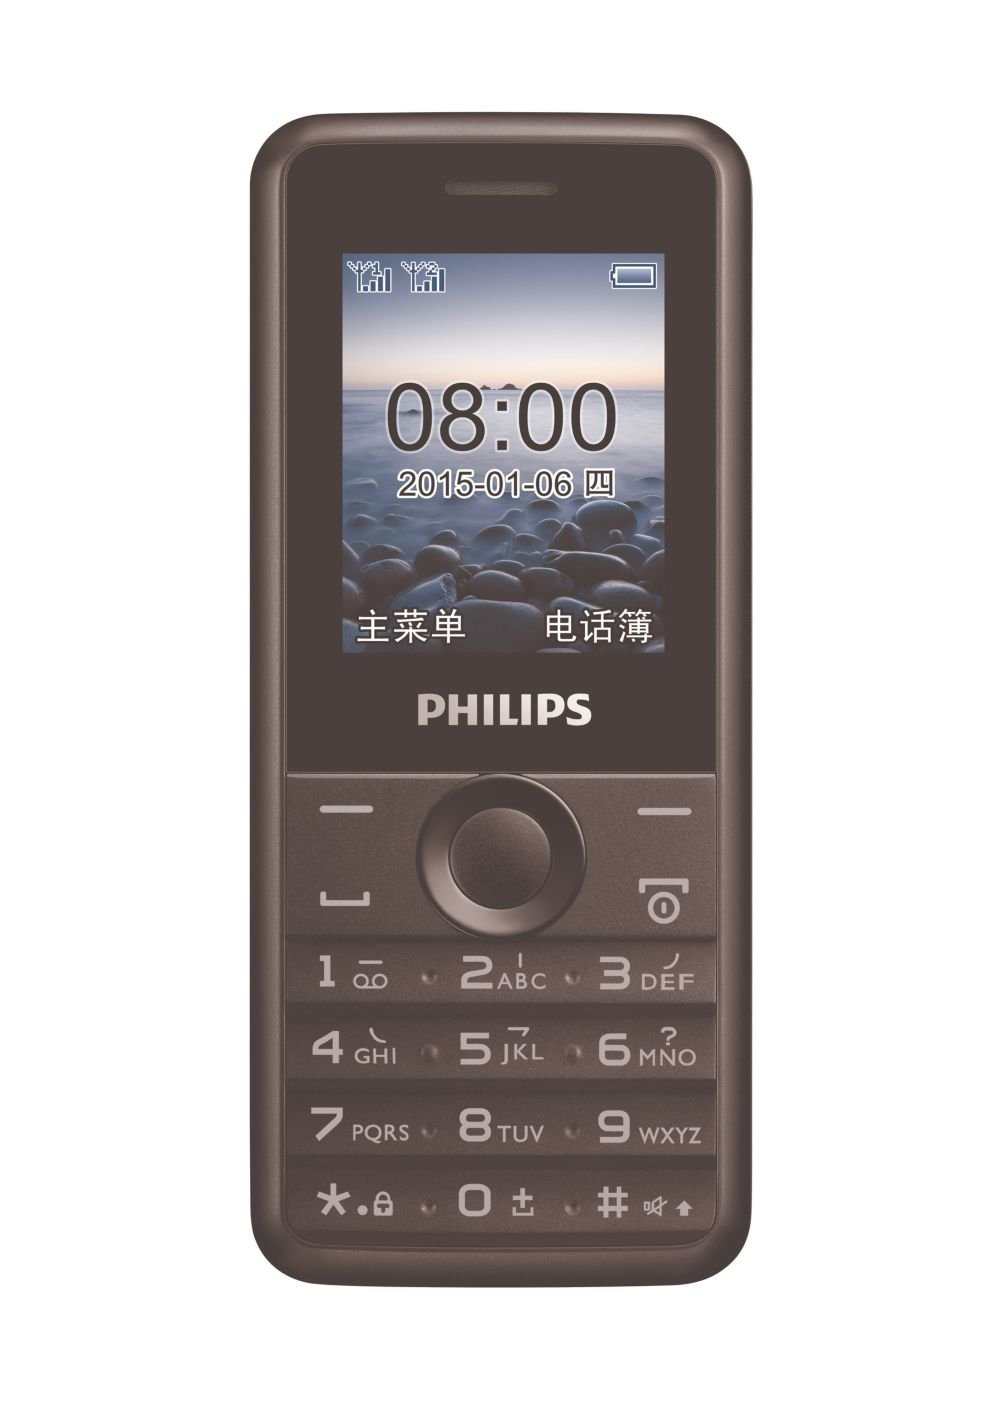 Mobile Communications PHILIPS Philips E103 long standby phone (meteorite black) dual card dual stand